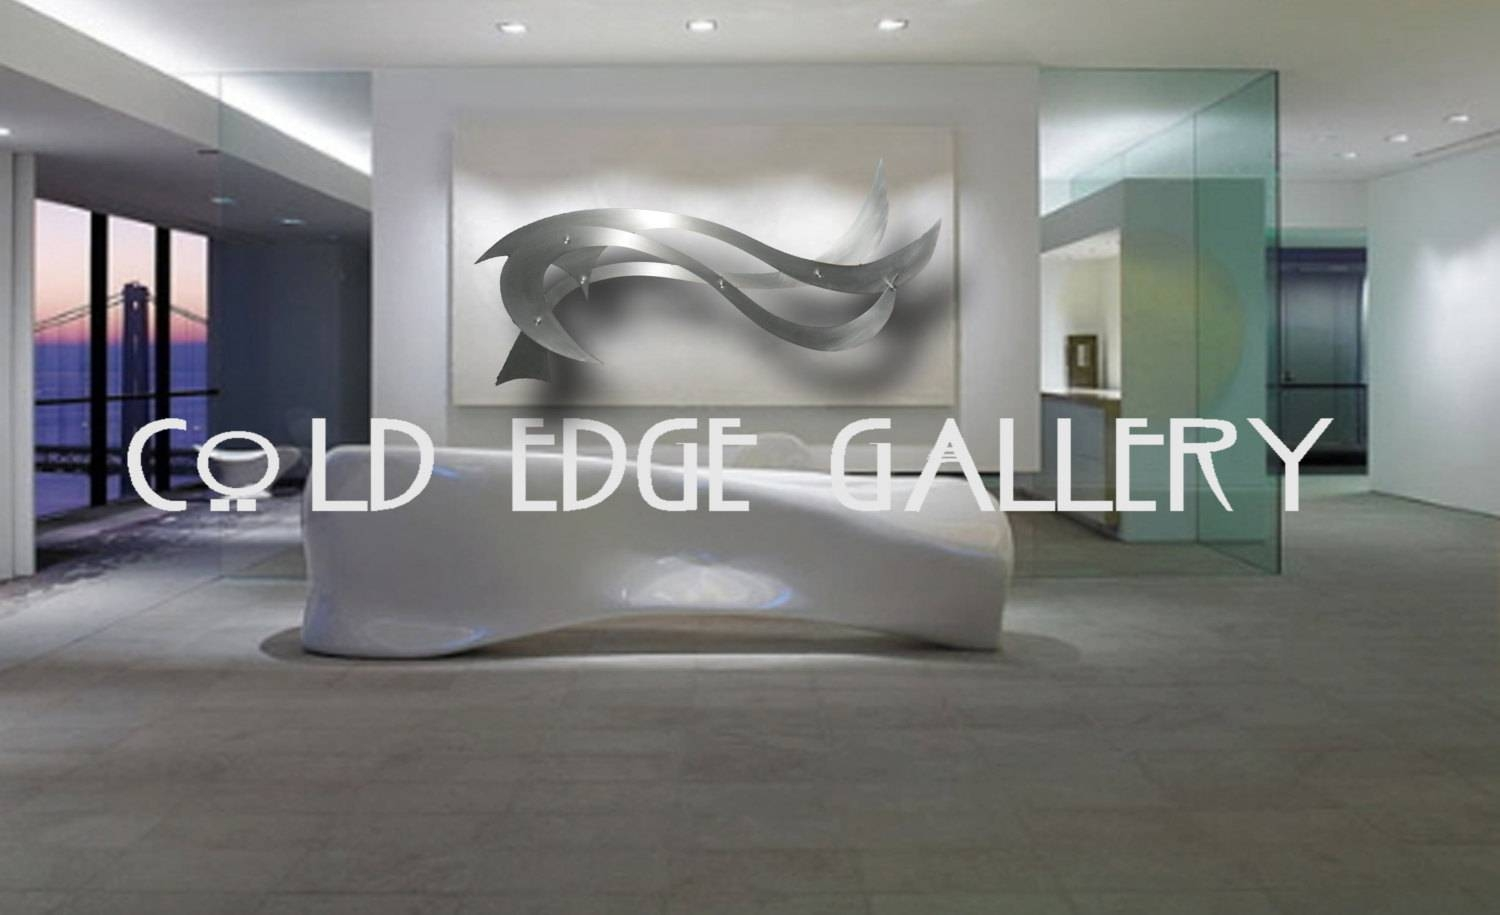 Ocean Breeze Large Metal Wall Art Corporate Wall Art Extra With Regard To Most Current Contemporary Metal Wall Art Sculptures (View 13 of 20)